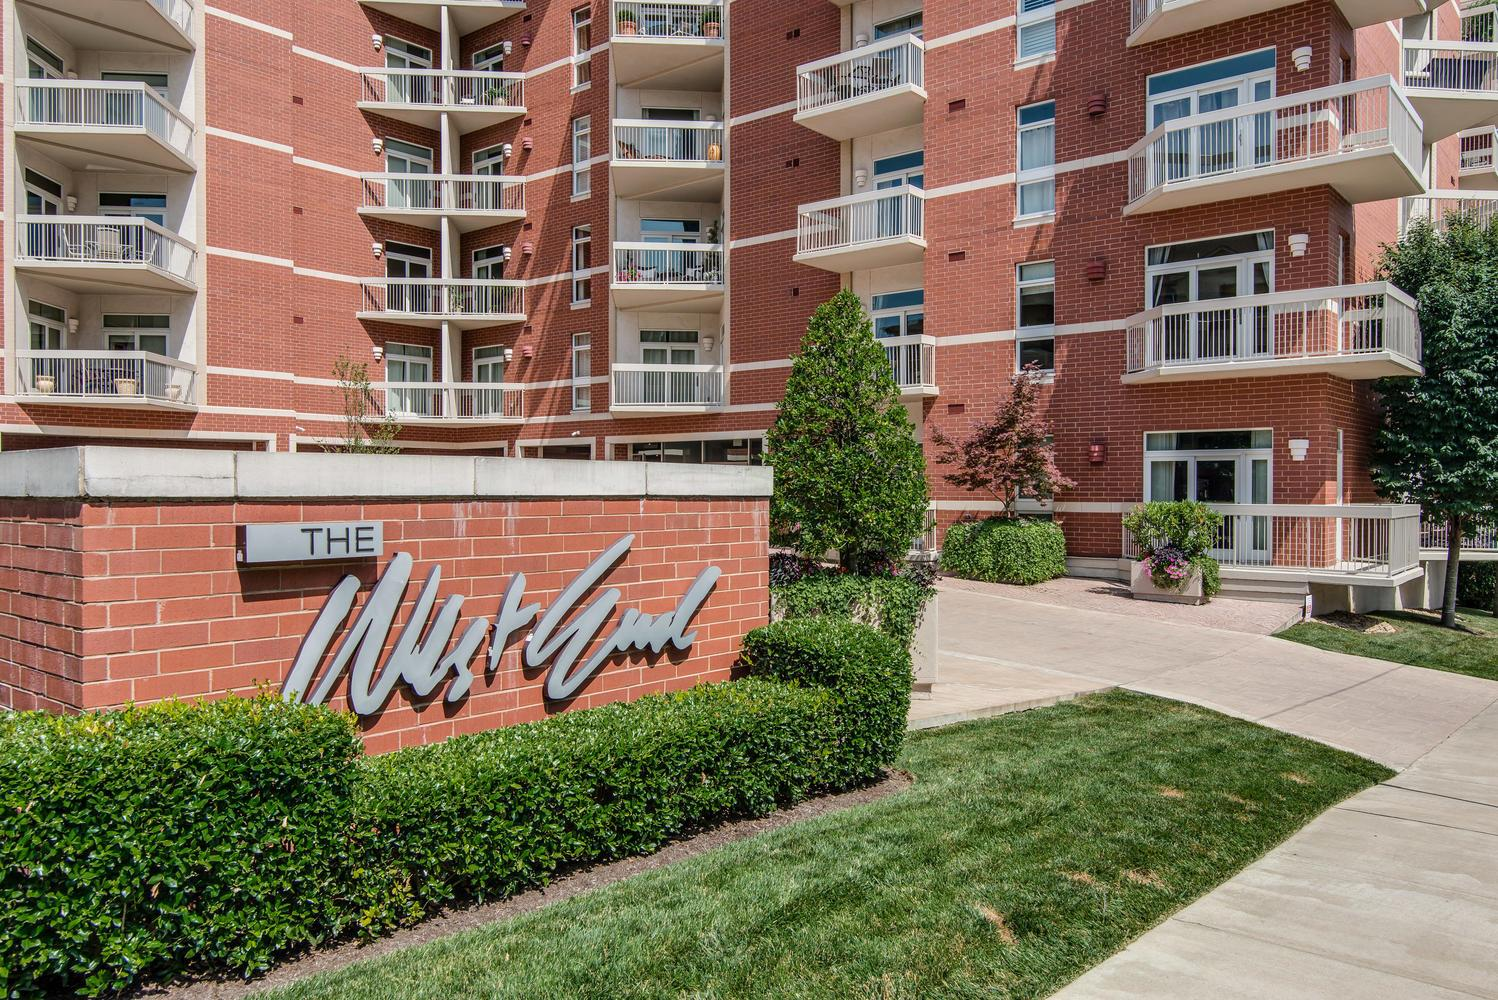 110 31st Ave N Apt 308, Nashville - Midtown in Davidson County County, TN 37203 Home for Sale